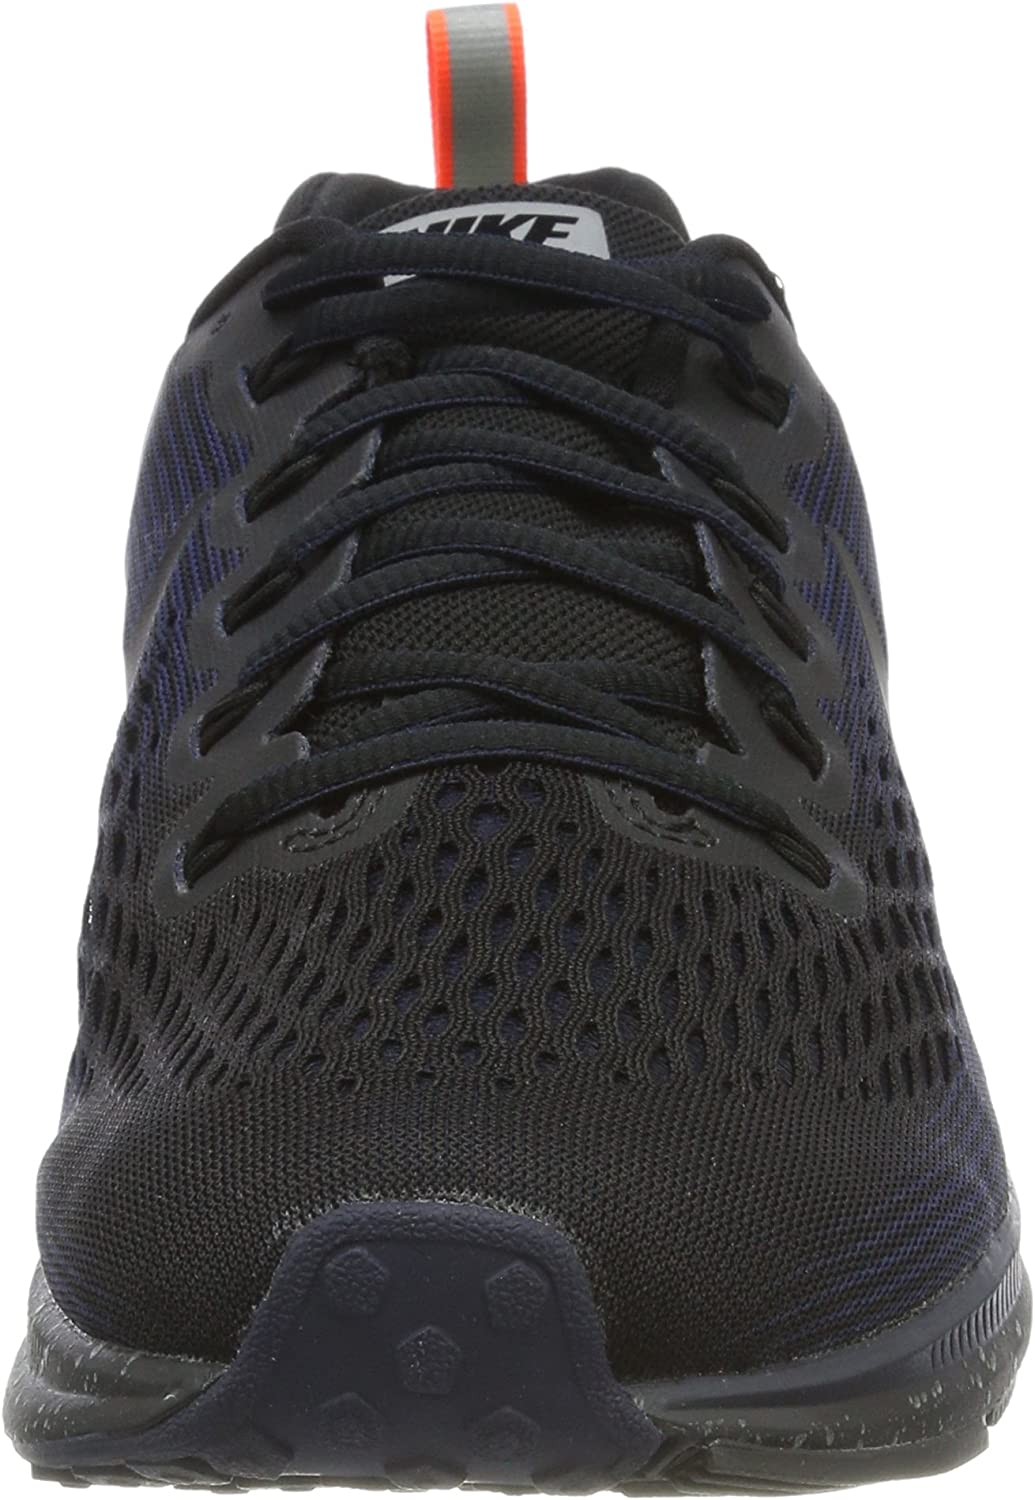 Nike Men s Air Zoom Pegasus 34 Shield Running Shoe Black Black-Black-Obsidian 9.0